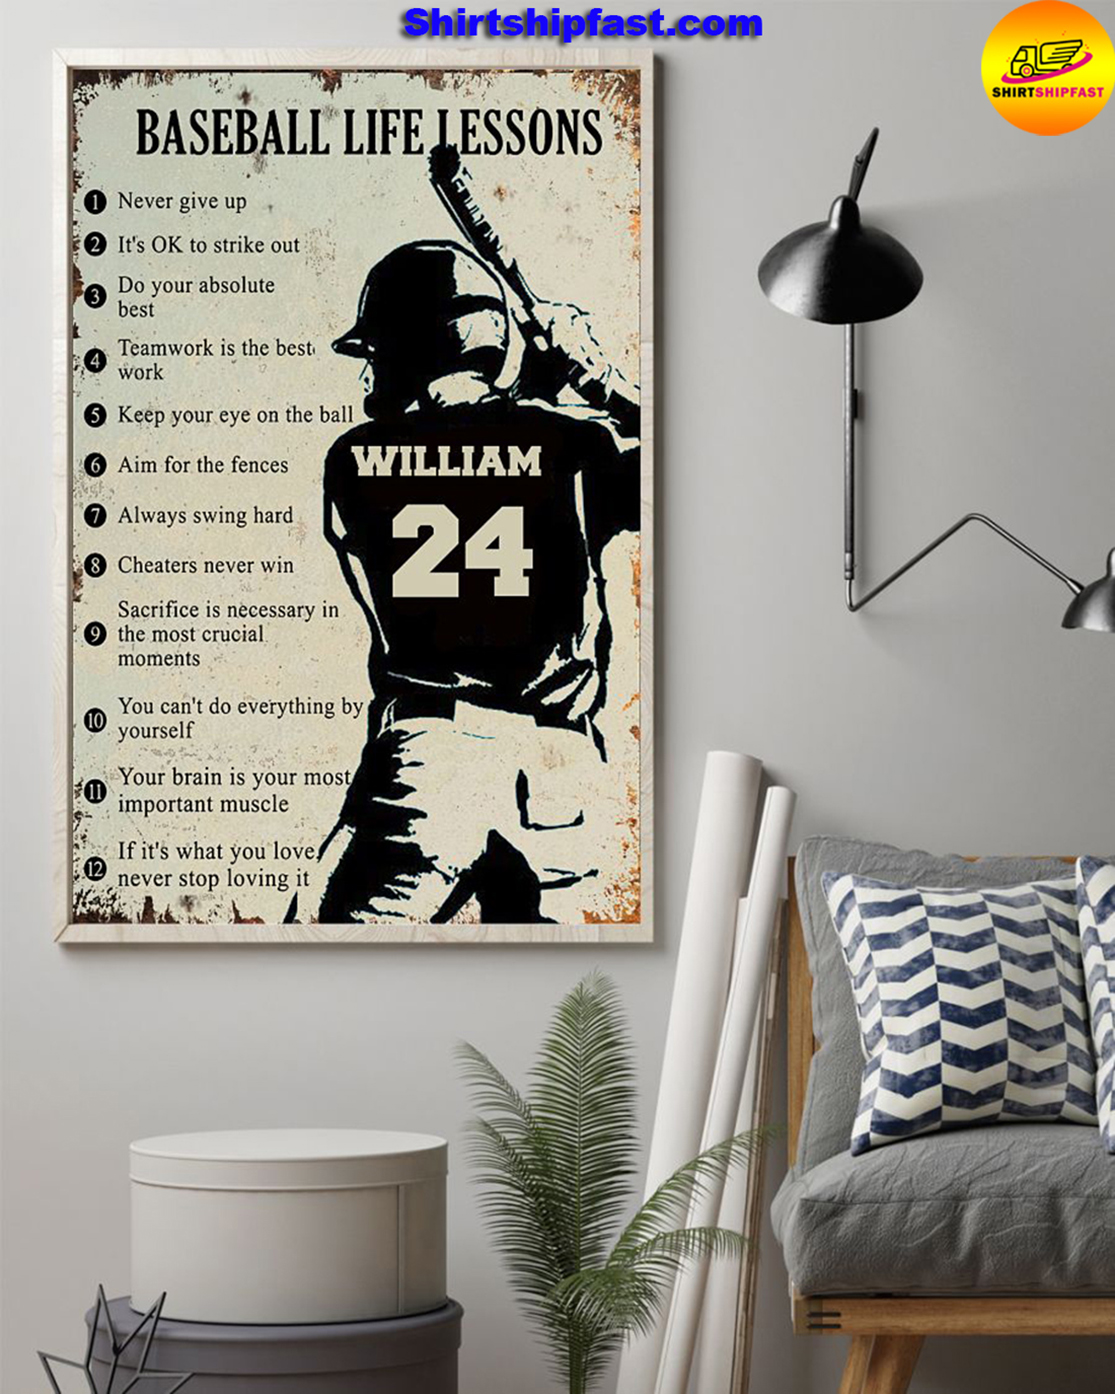 Personalize Baseball life lessons poster - Picture 3